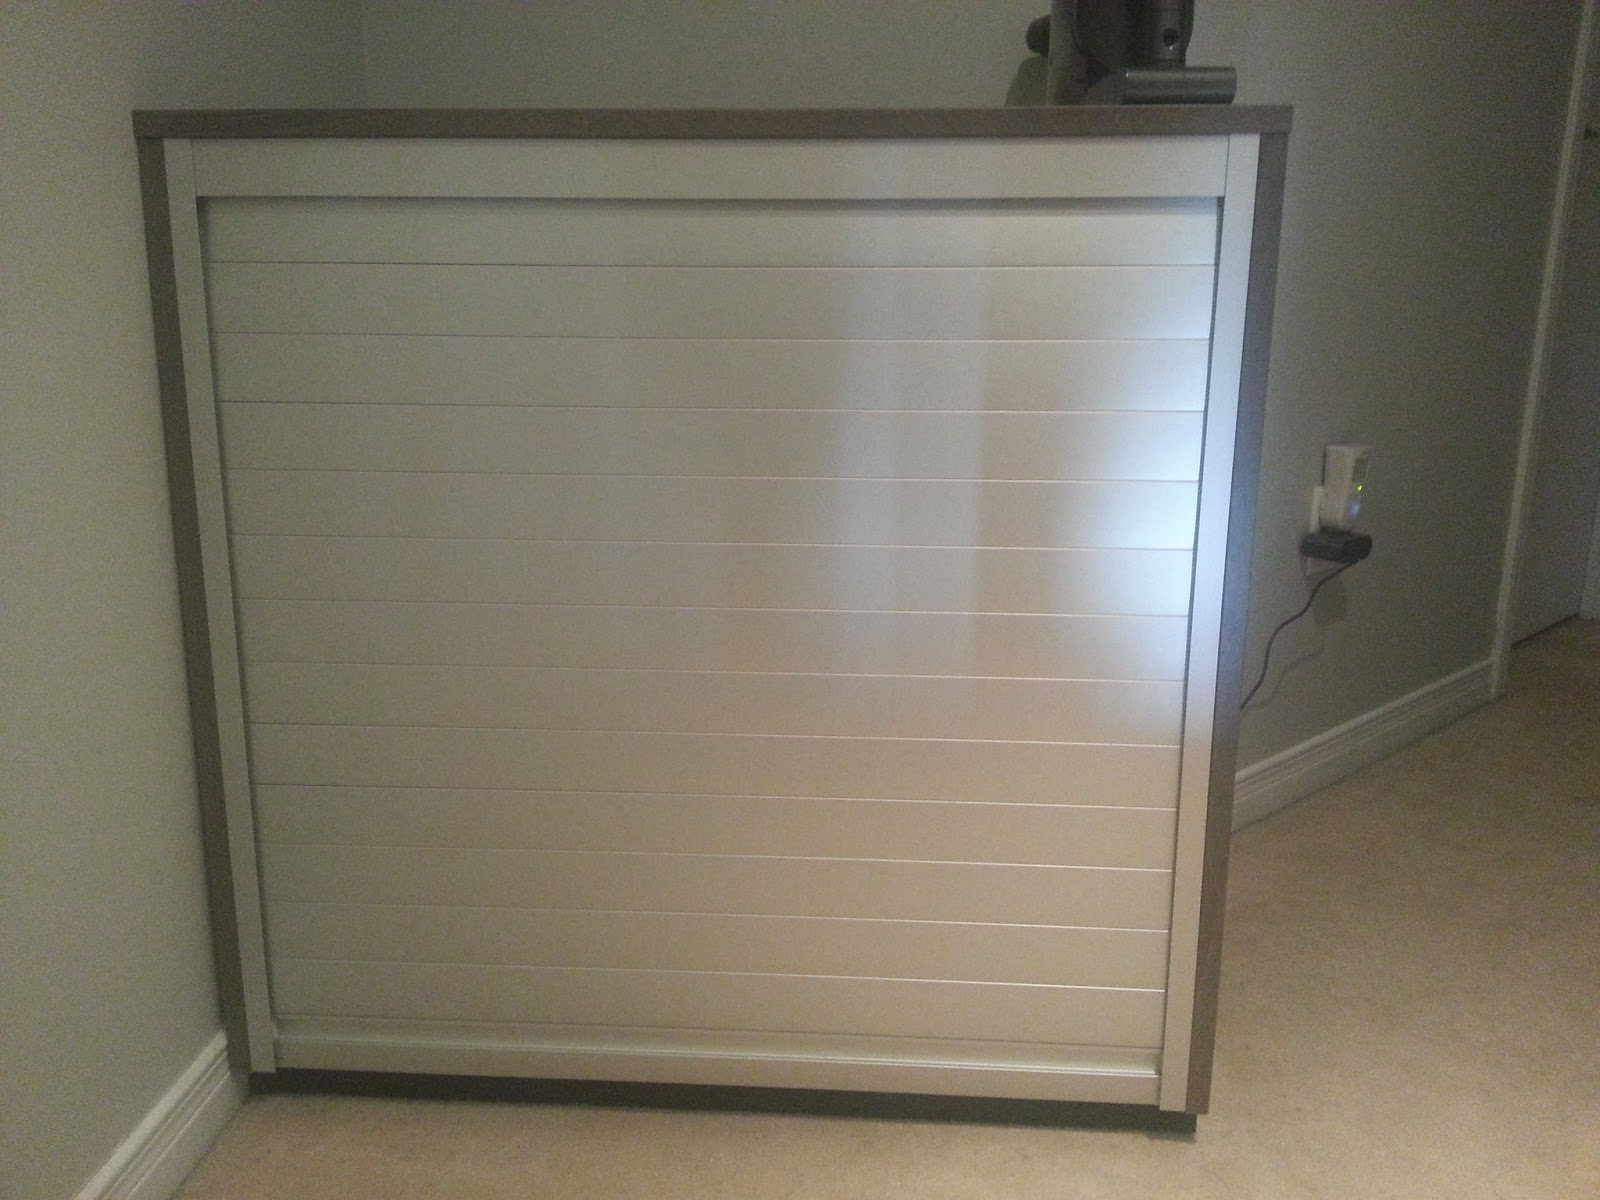 Ikea Galant Roll Front Cabinet ~   simple Ikea hack of a Galant Roll Front Cabinet as a kitty litter box